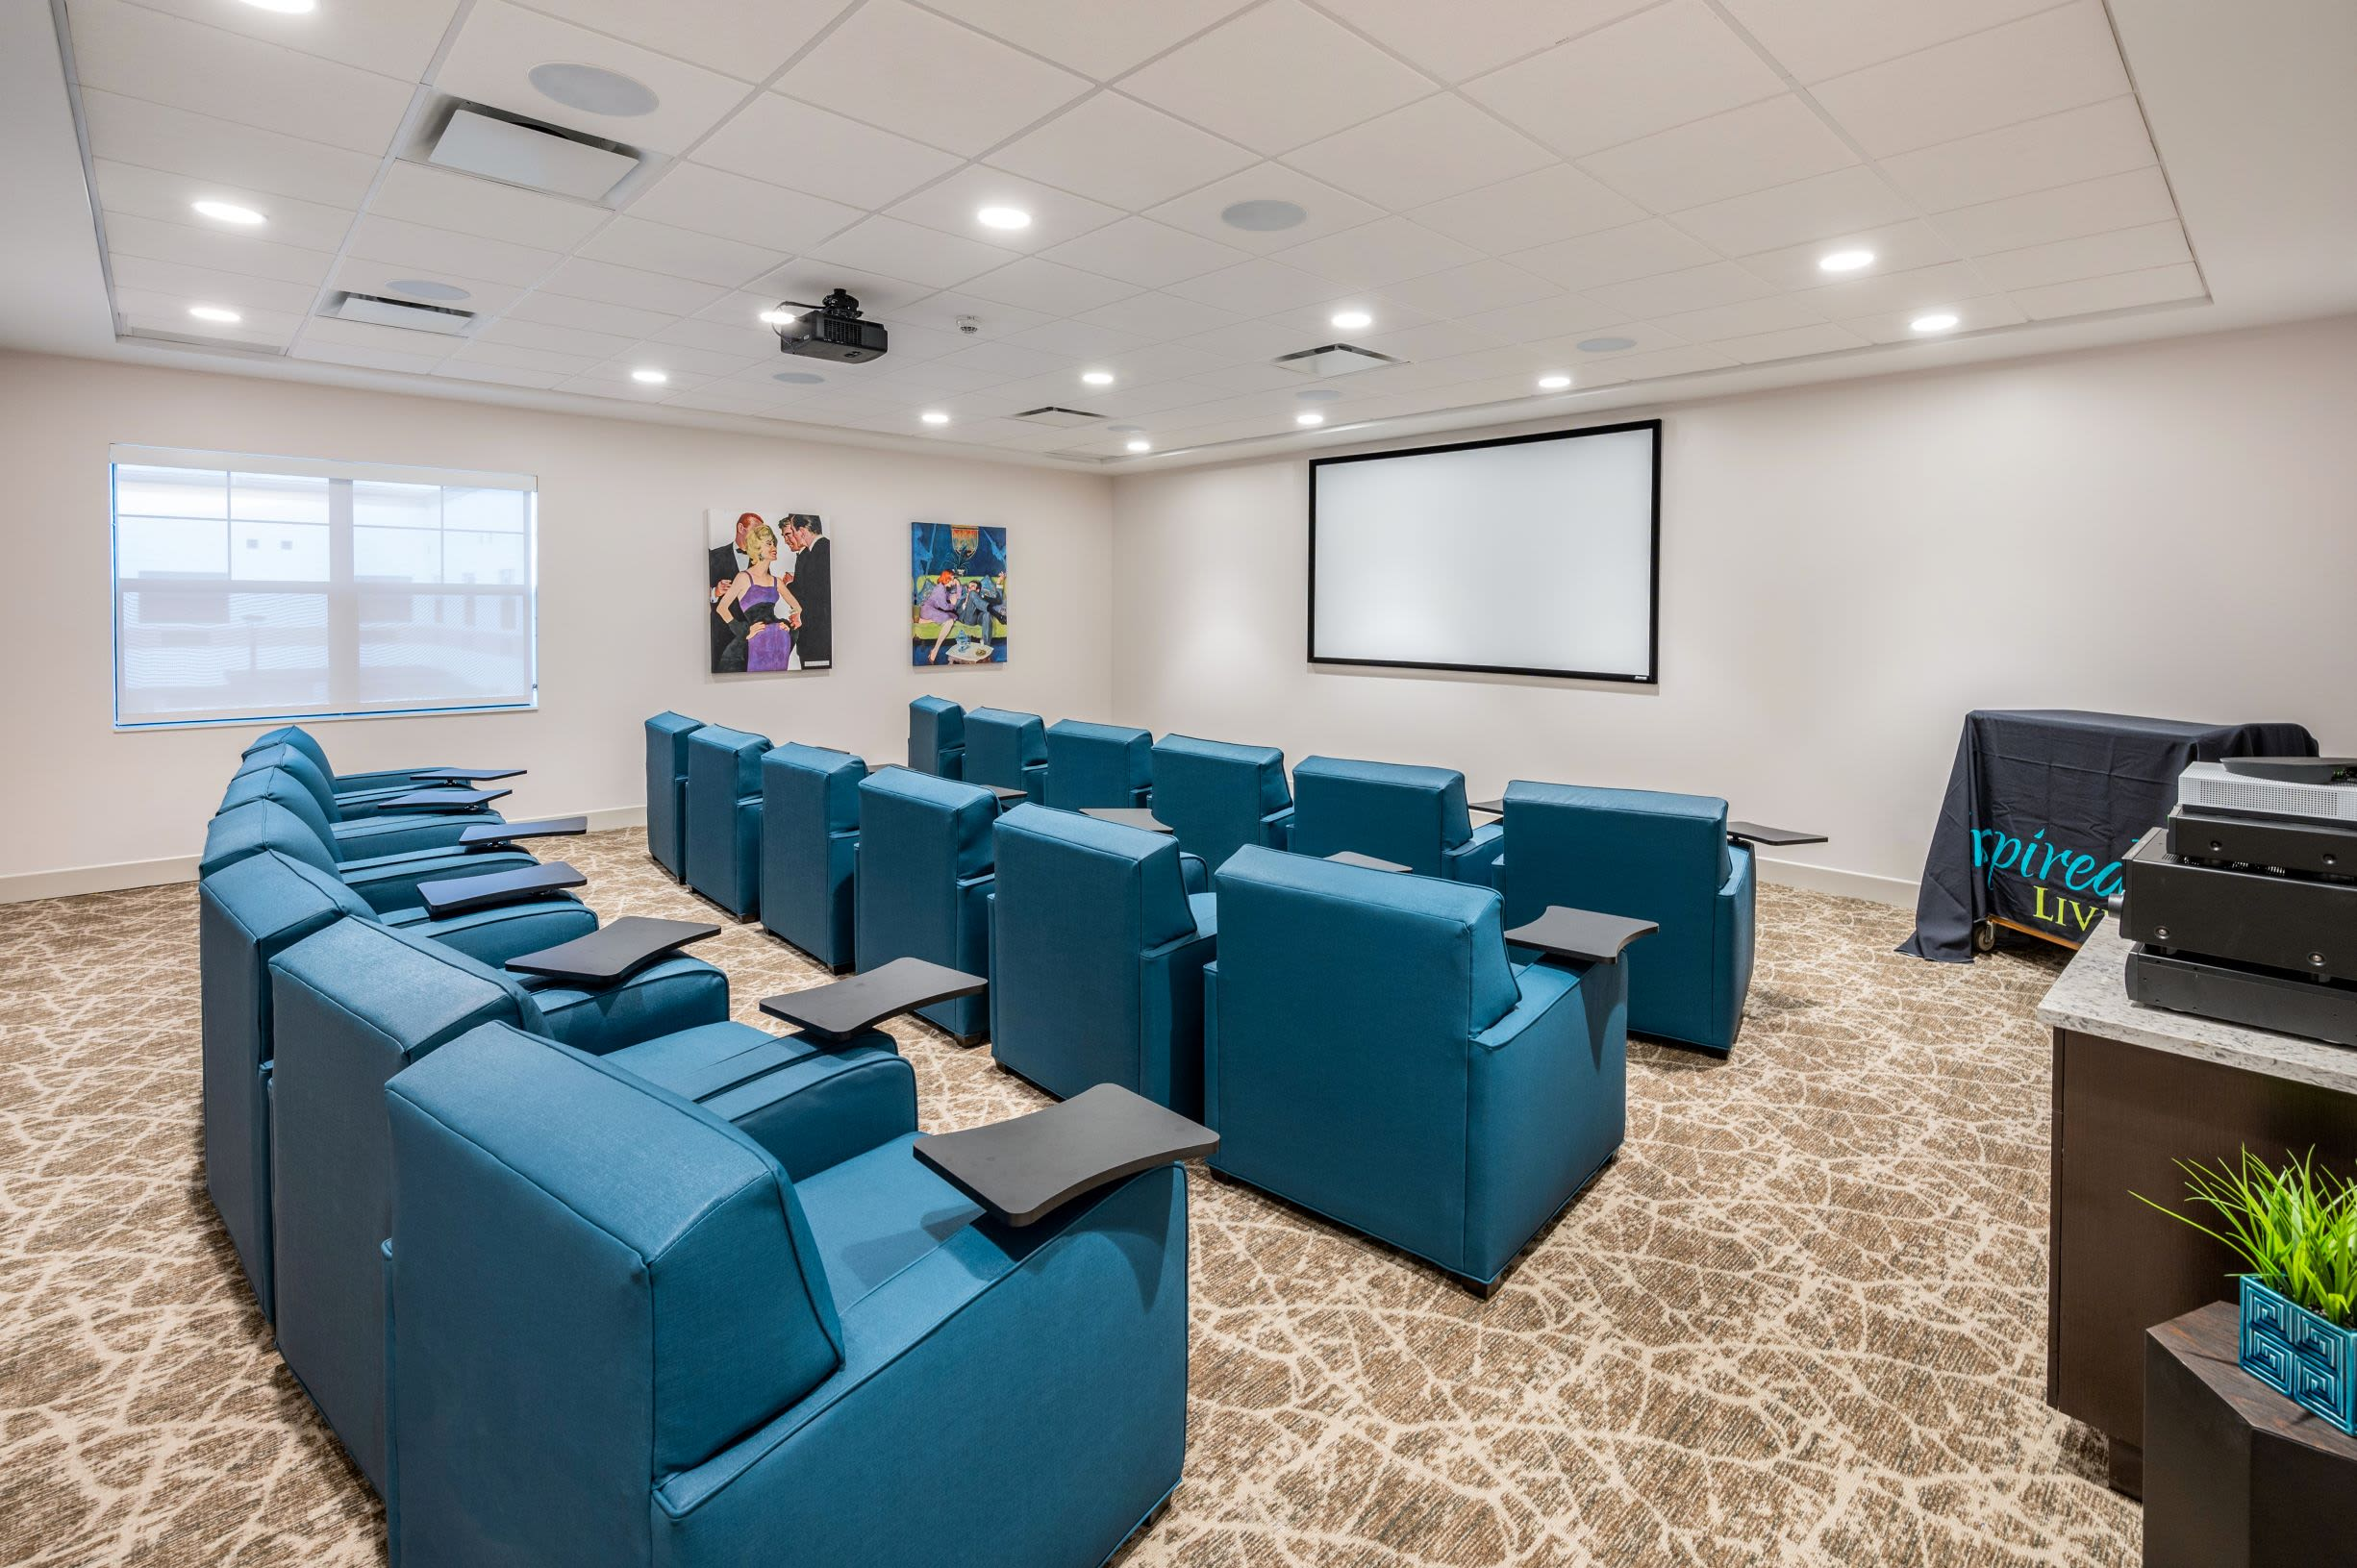 Movie Theatre at Alura By Inspired Living in Rockledge, Florida.